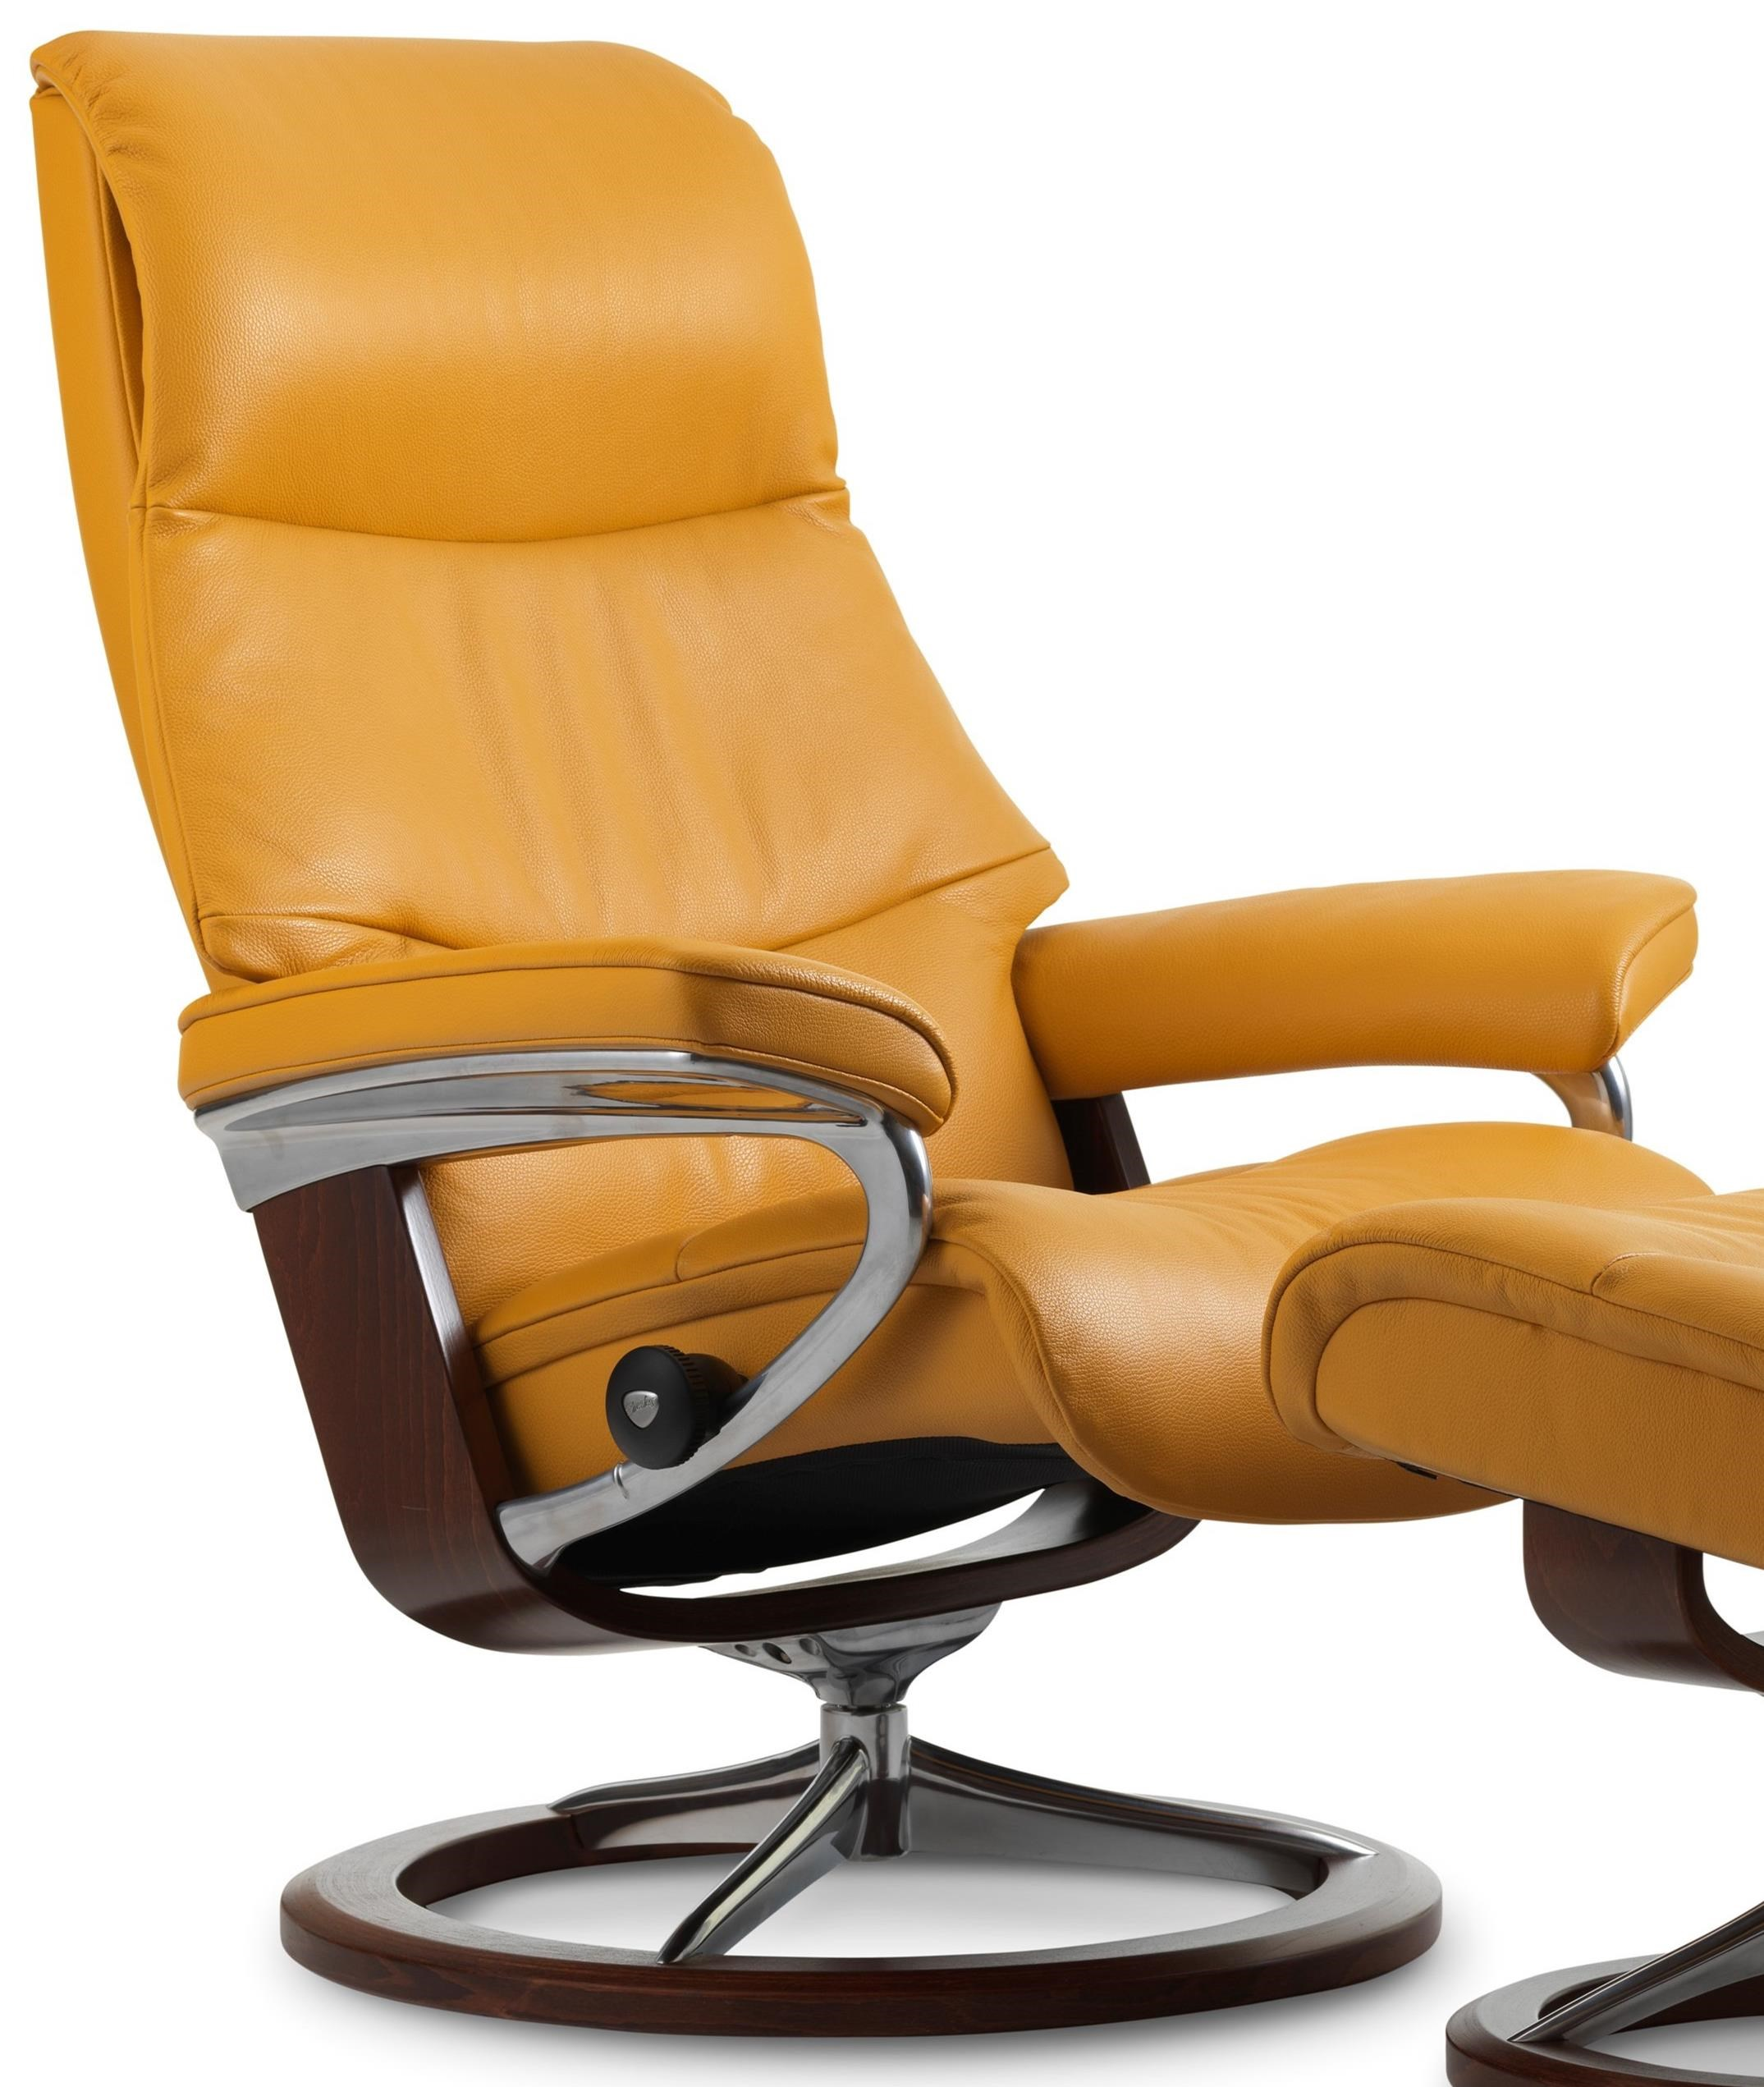 View Medium Reclining Chair with Signature Base by Stressless at Jordan's Home Furnishings